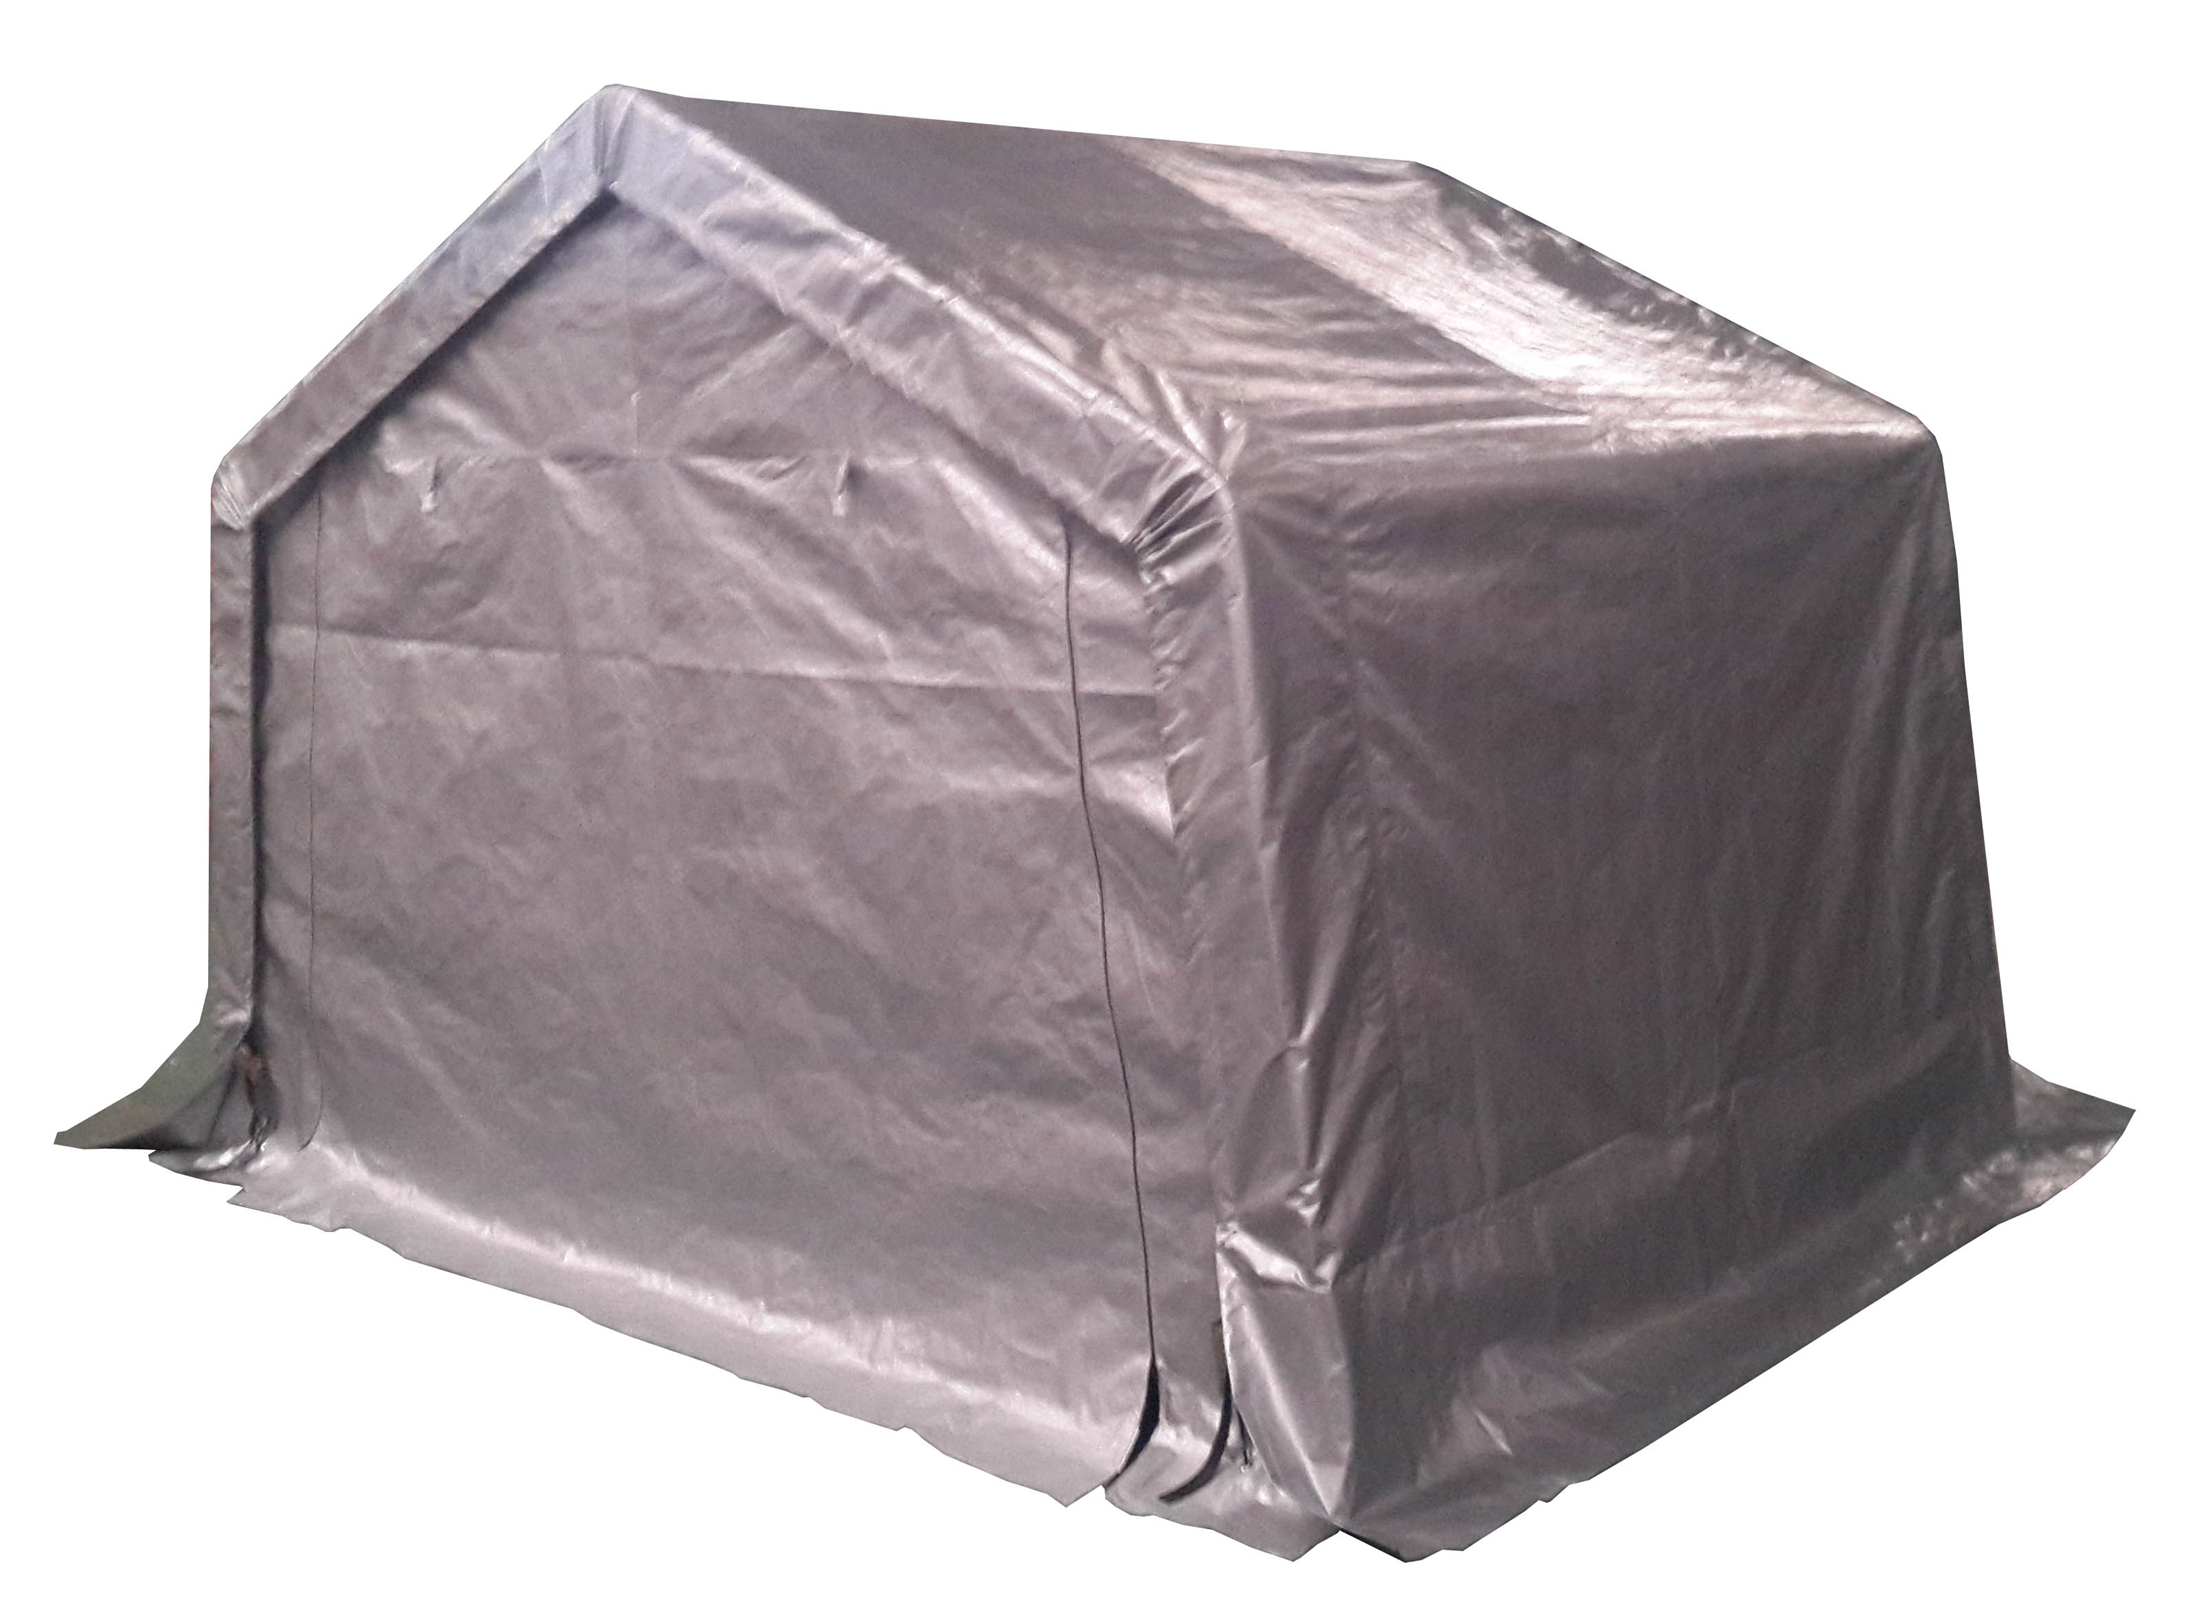 Cover Metal Shed : Foxhunter waterproof motor bike cover storage shed tent